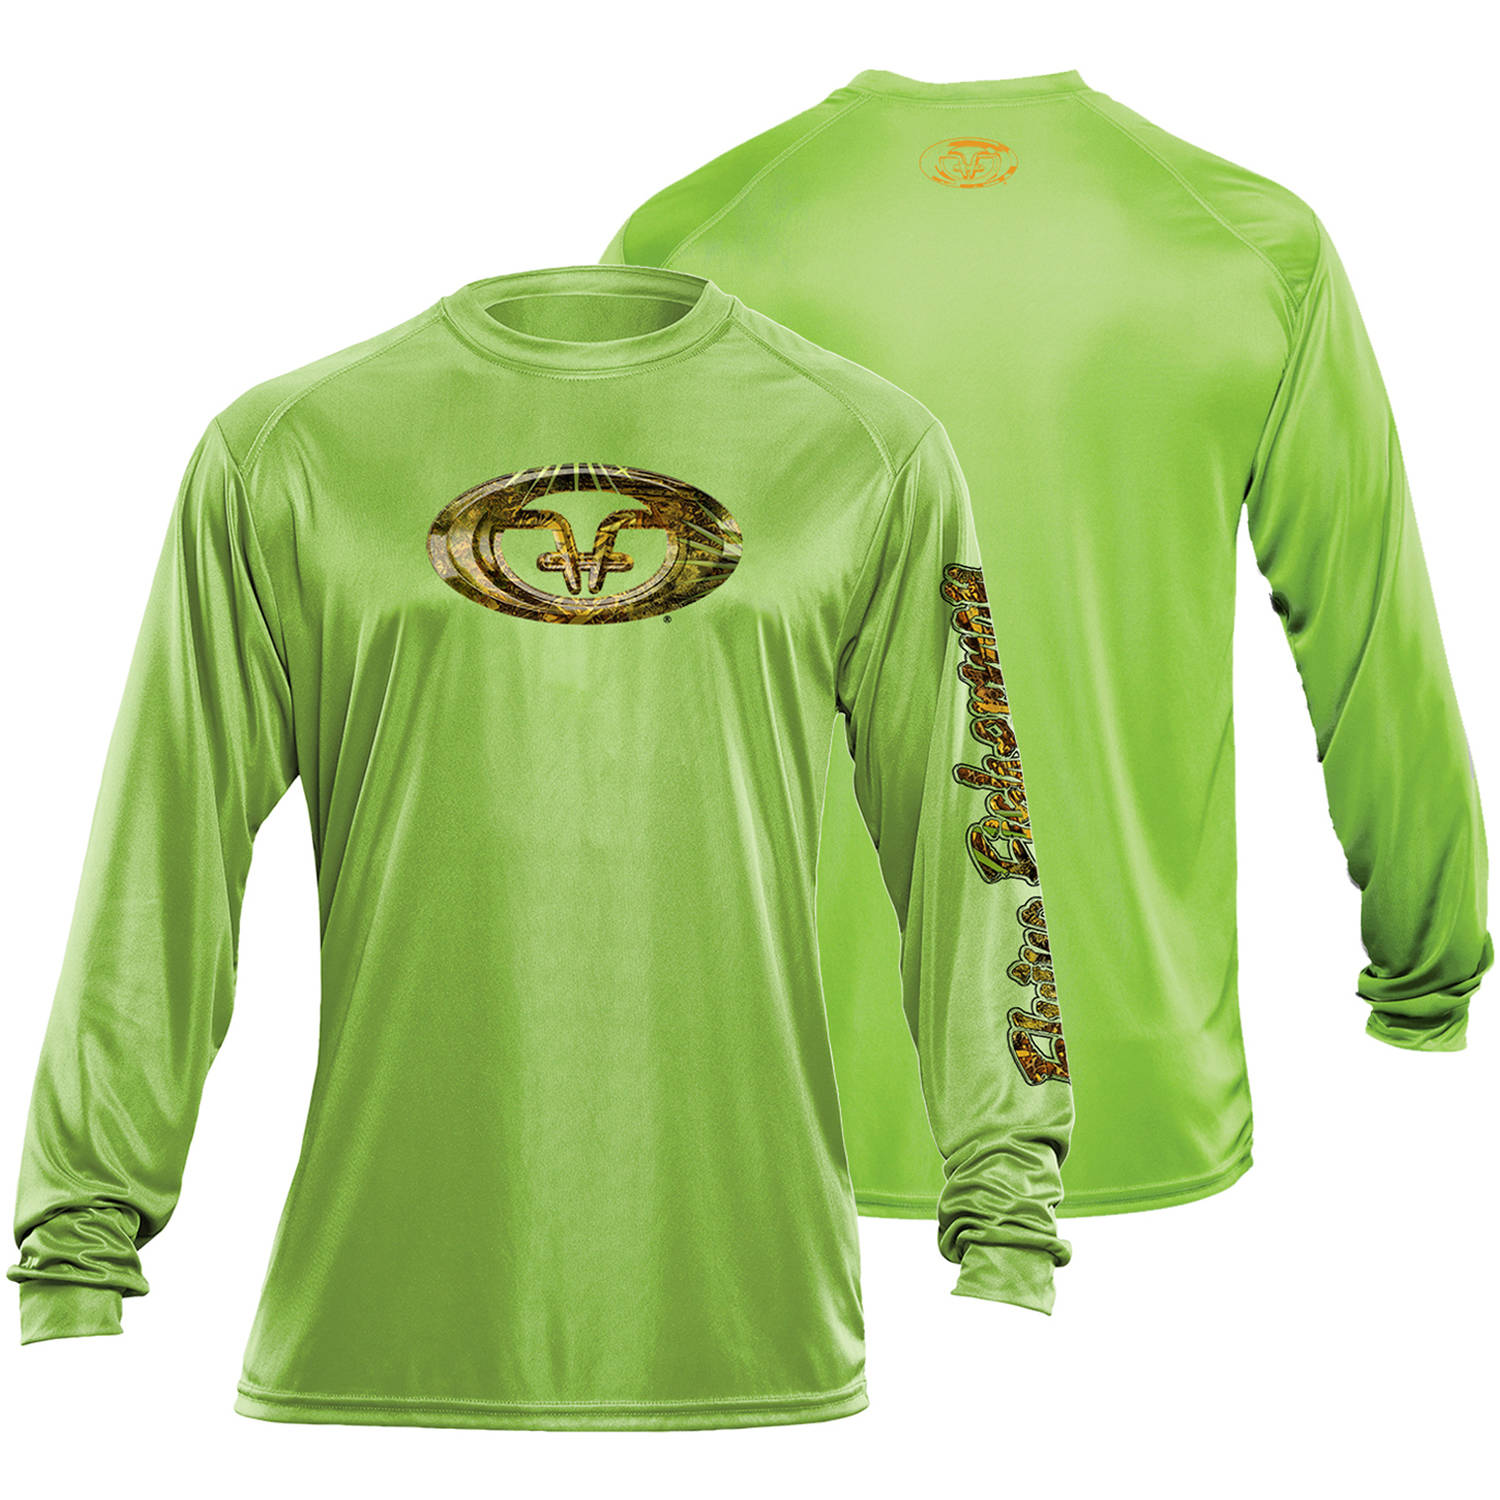 Flying Fisherman Camo Logo Performance Tee, Lime, L by Flying Fisherman